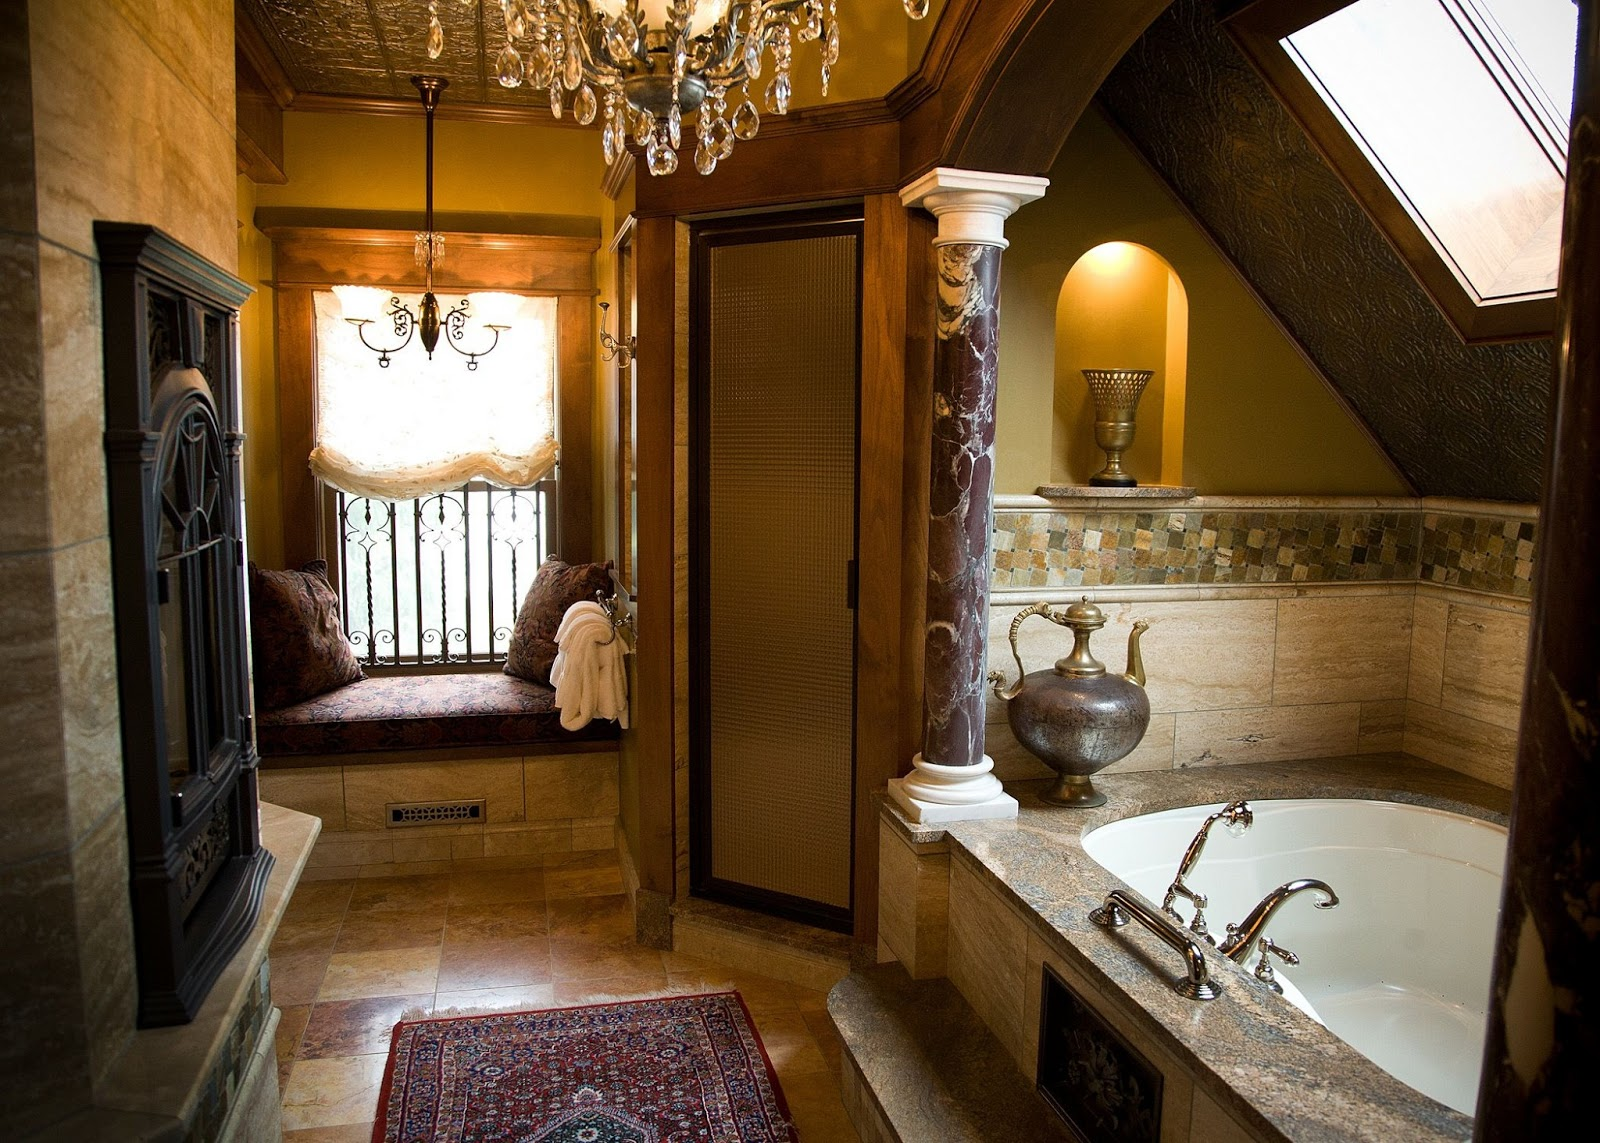 17 interesting bathroom designs architectures roman for Different bathrooms